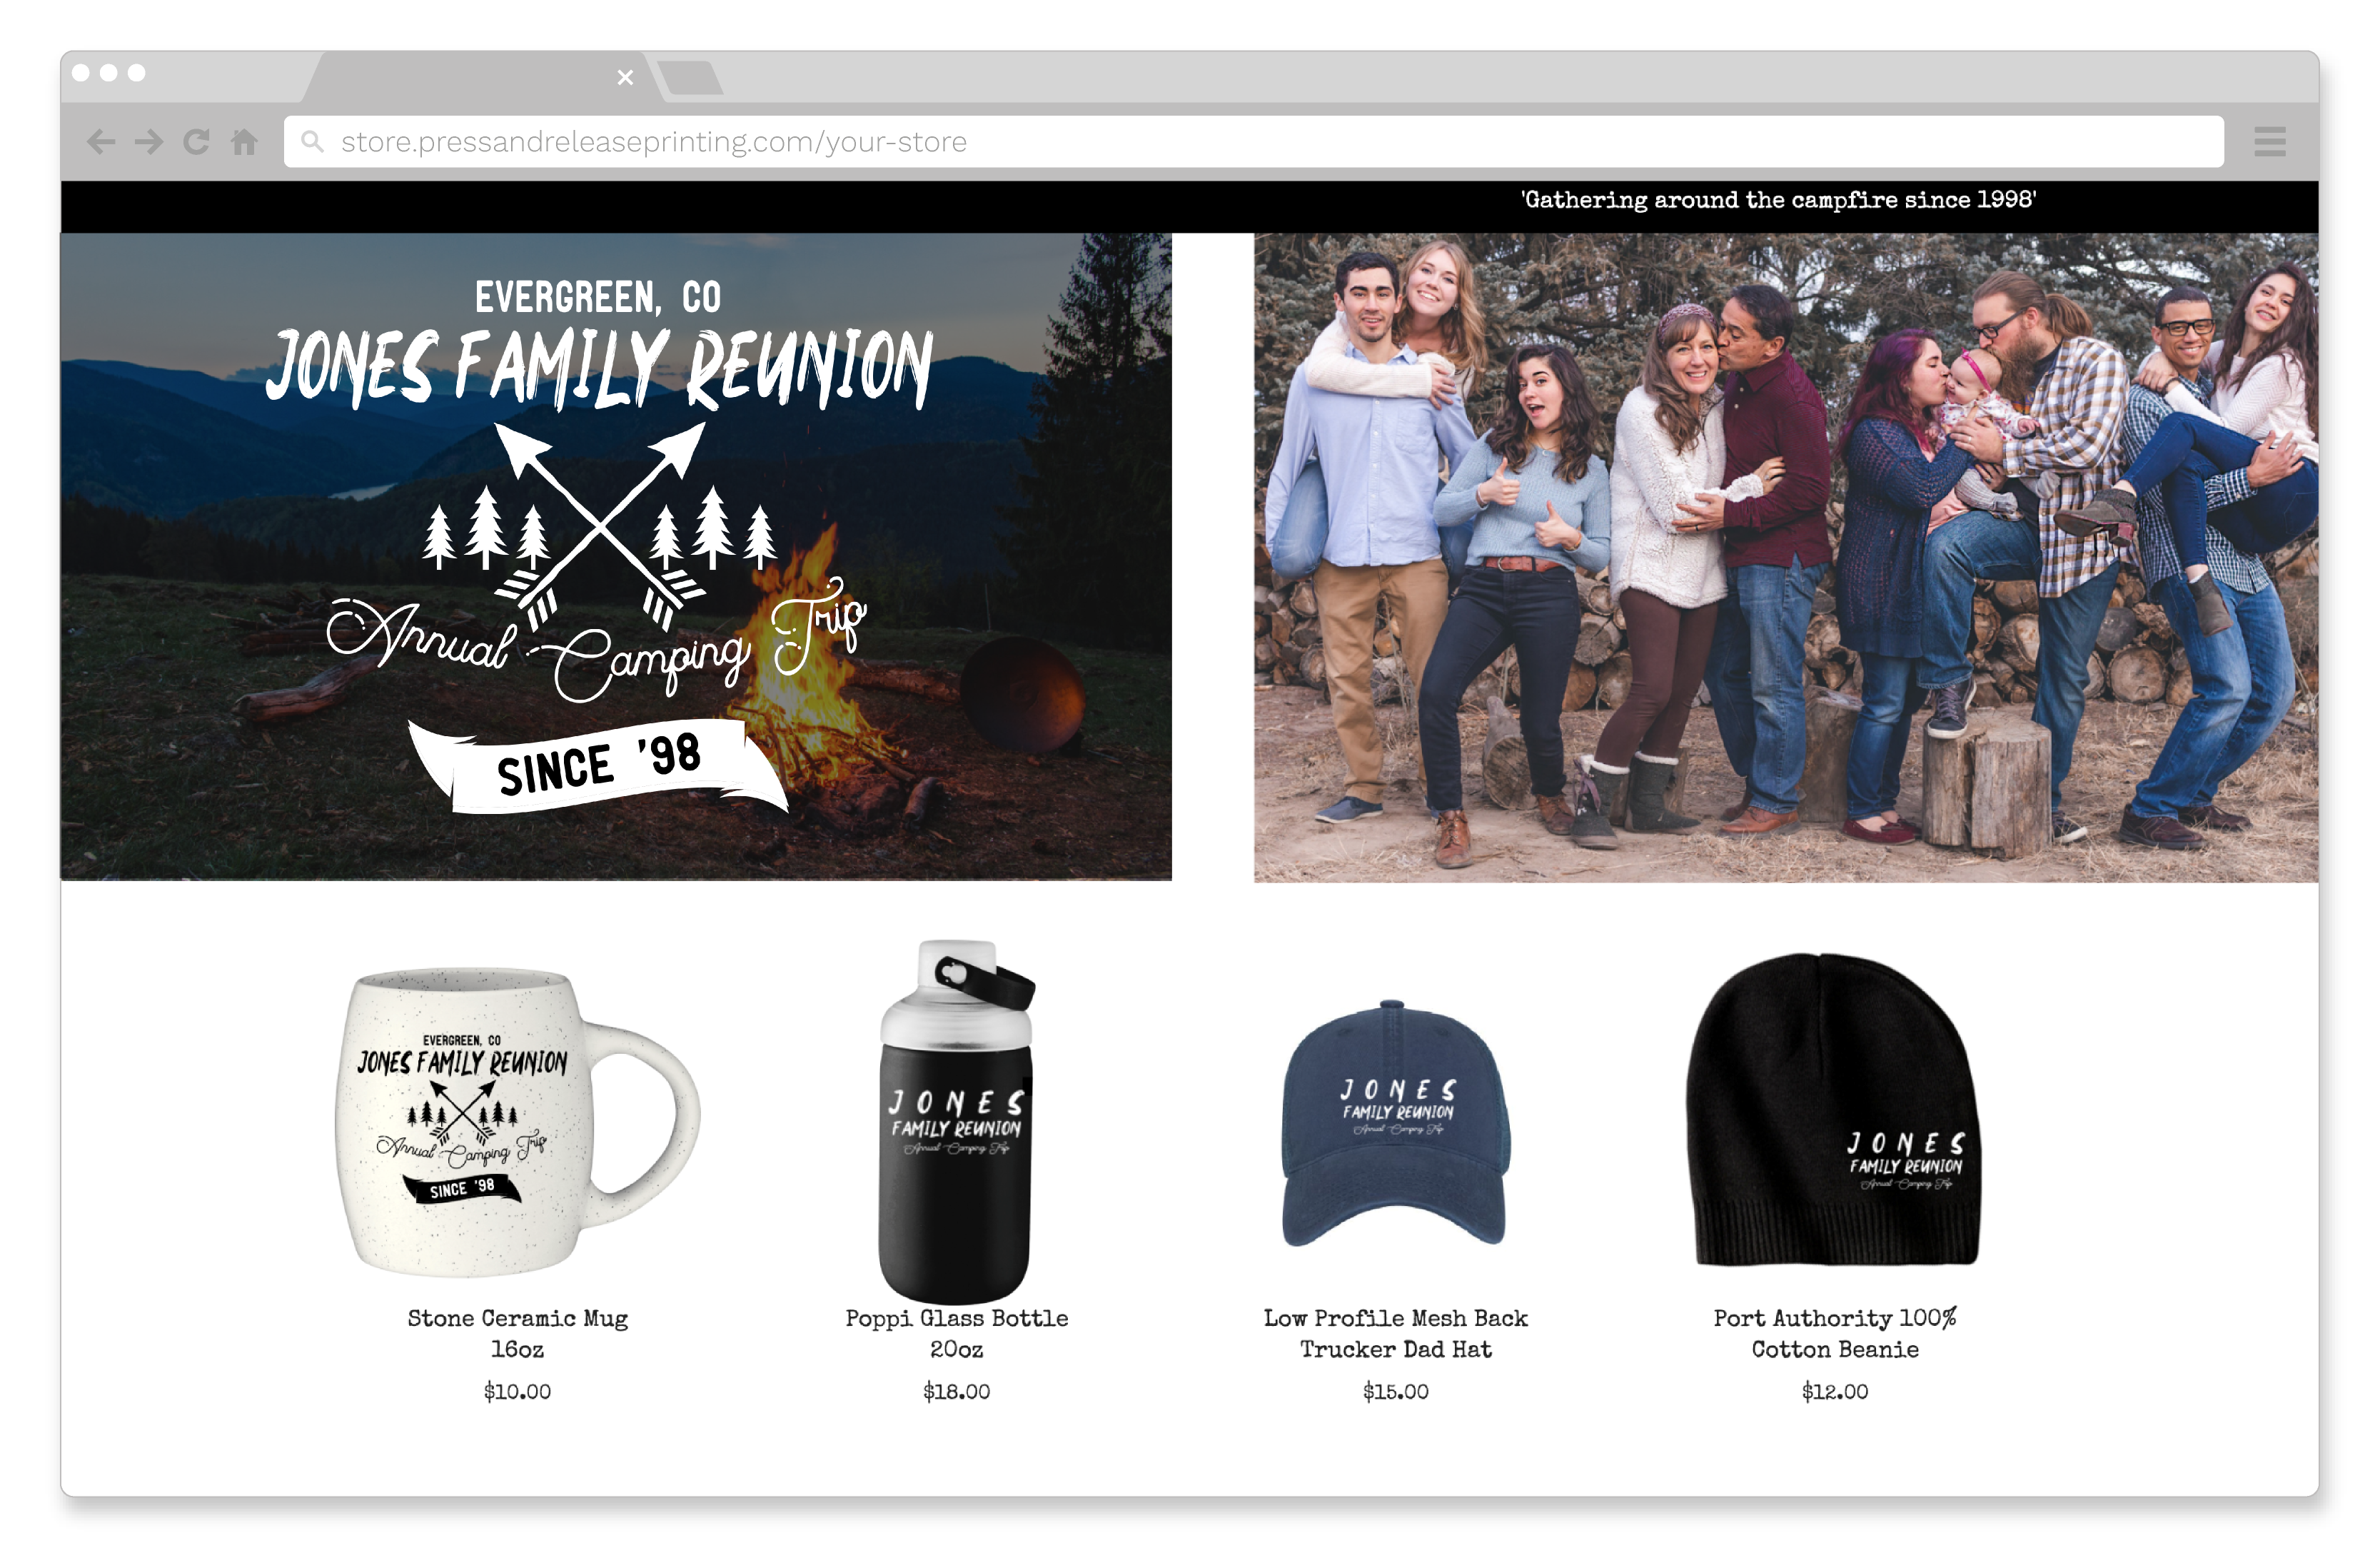 A family reunion online store.